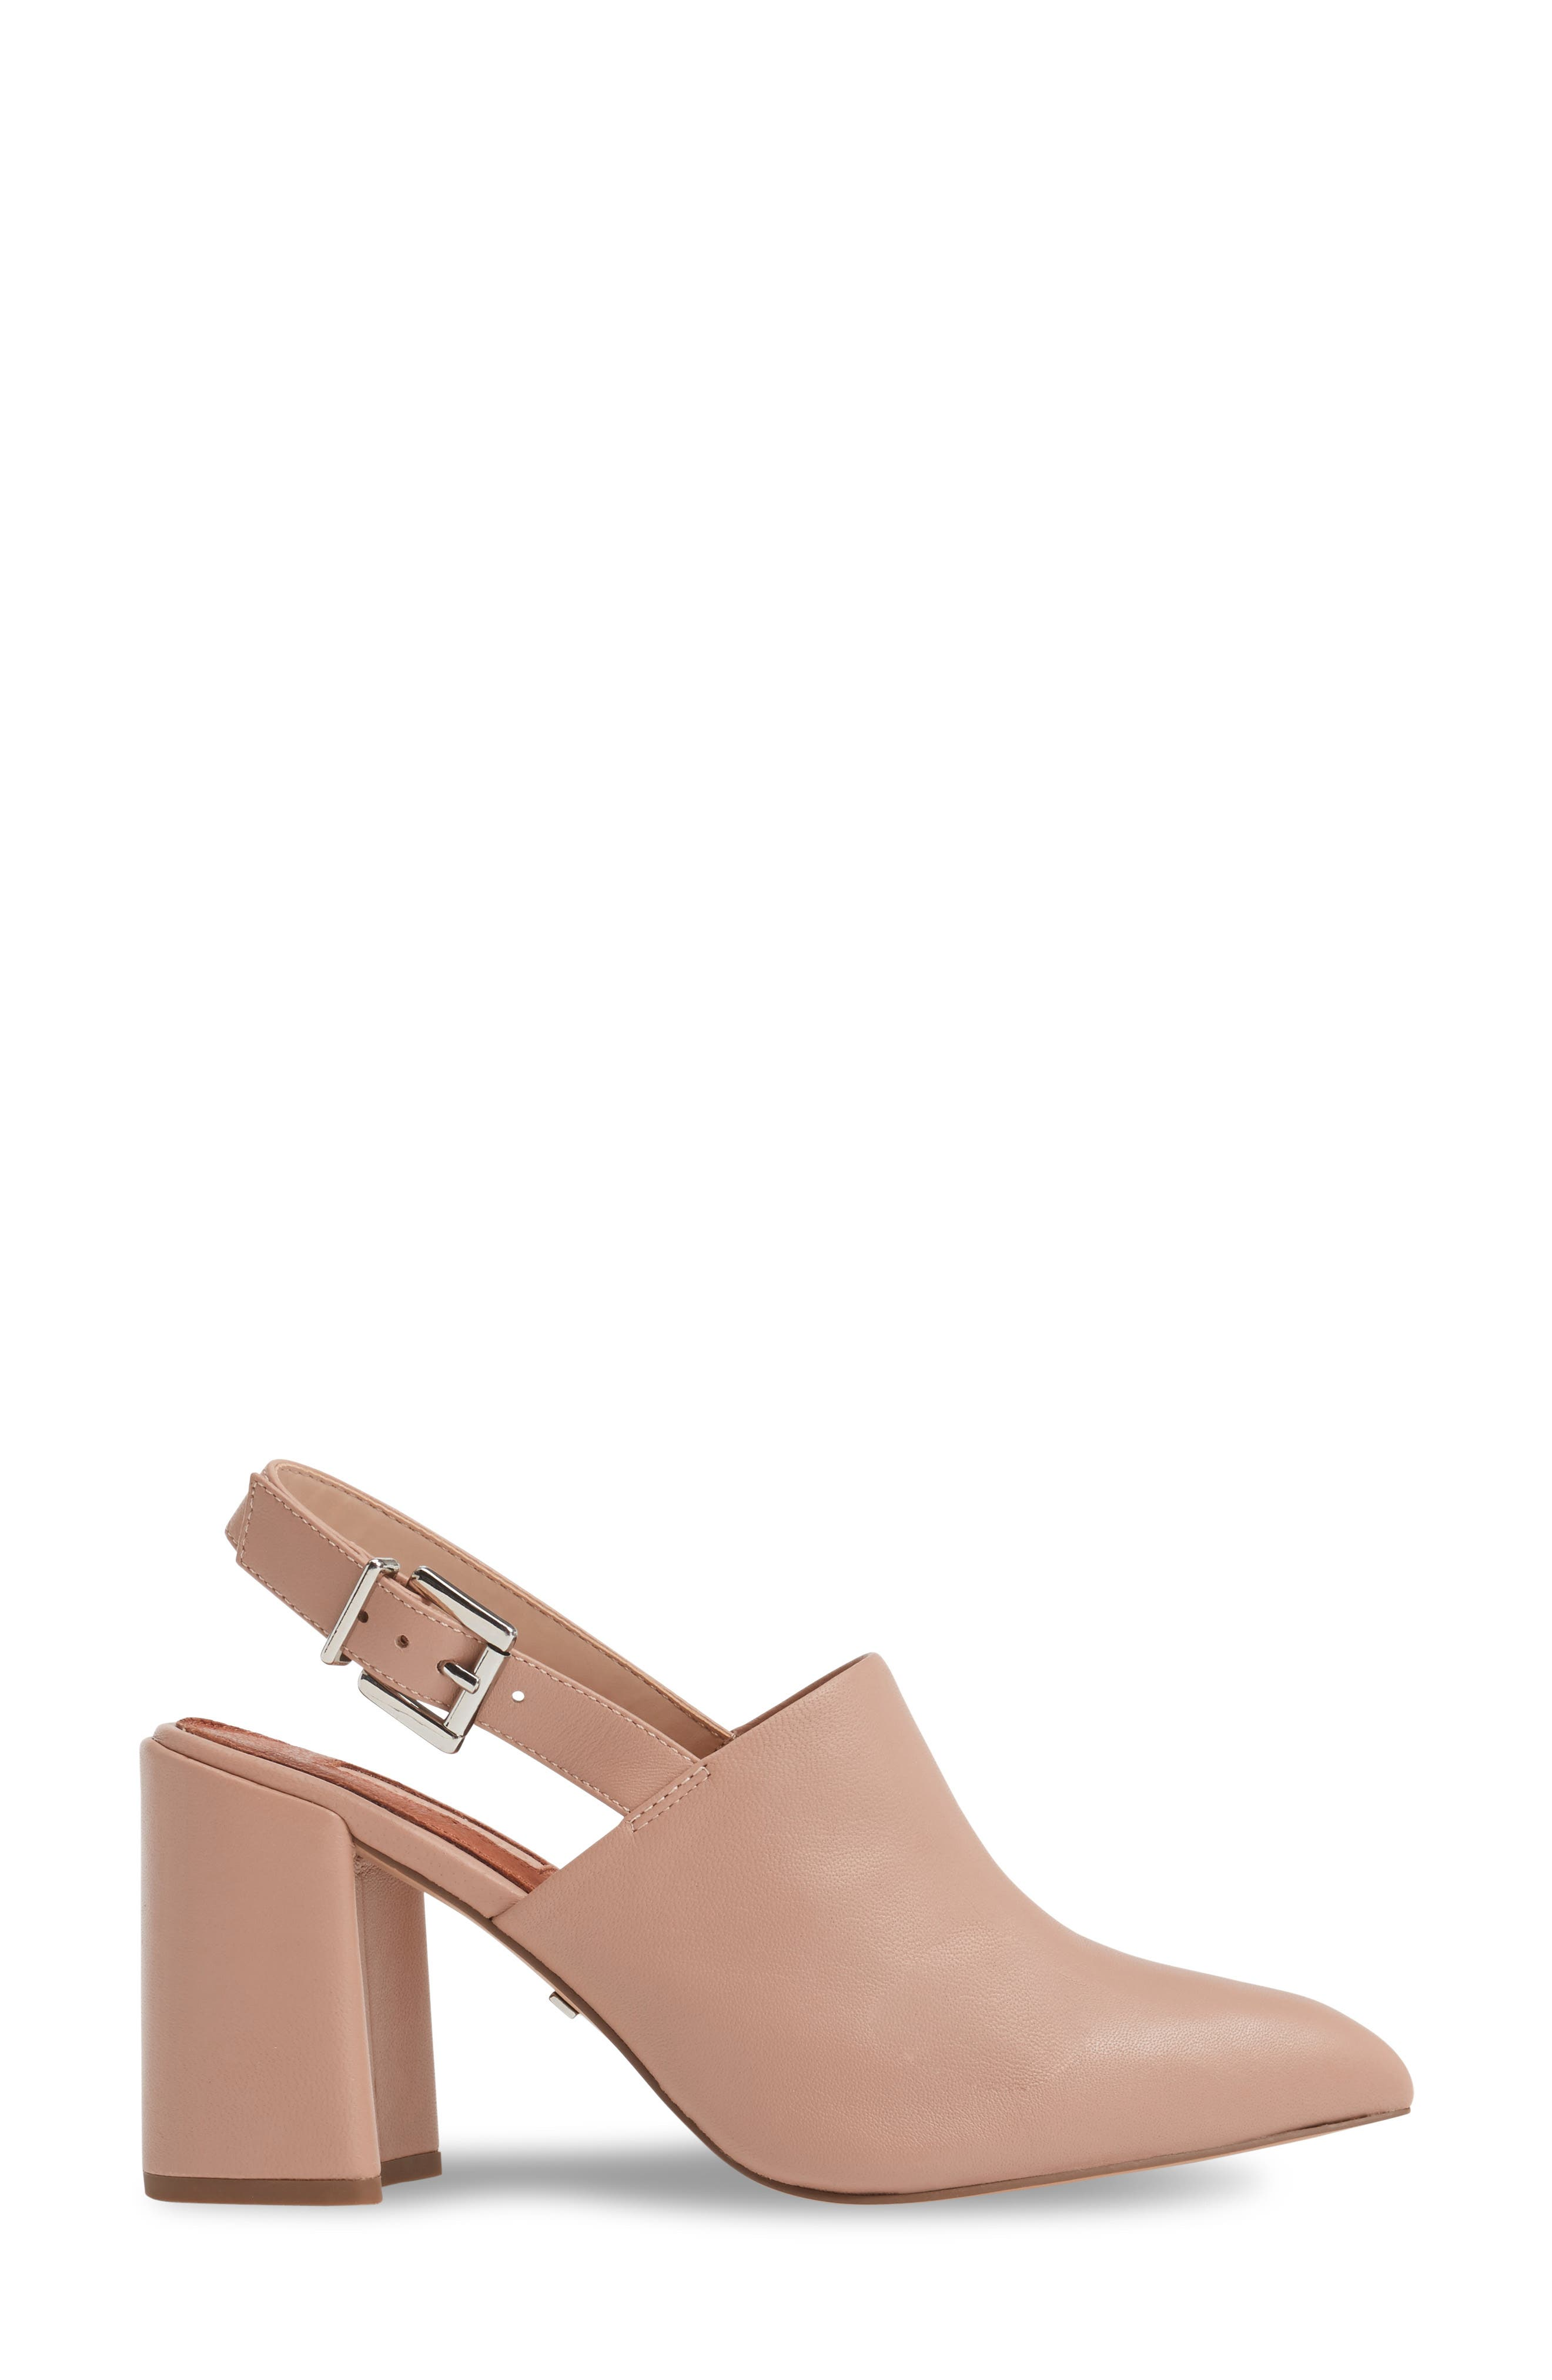 Alternate Image 3  - Topshop Groove Block Heel Pump (Women)